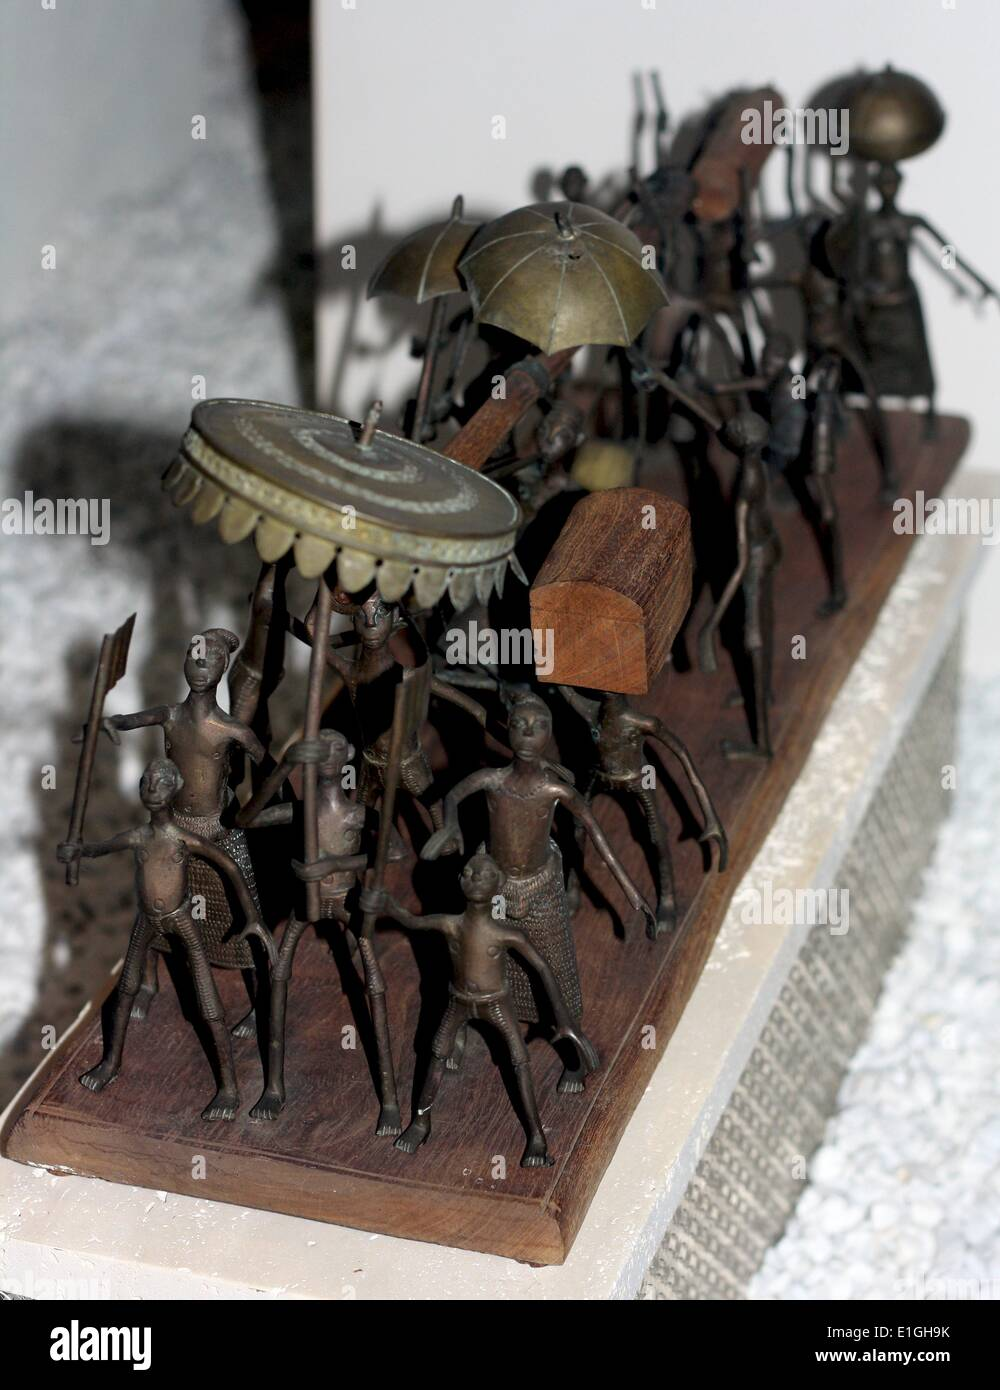 Model of a Royal Procession, Benin, West Africa, 20th century, Fon people. - Stock Image